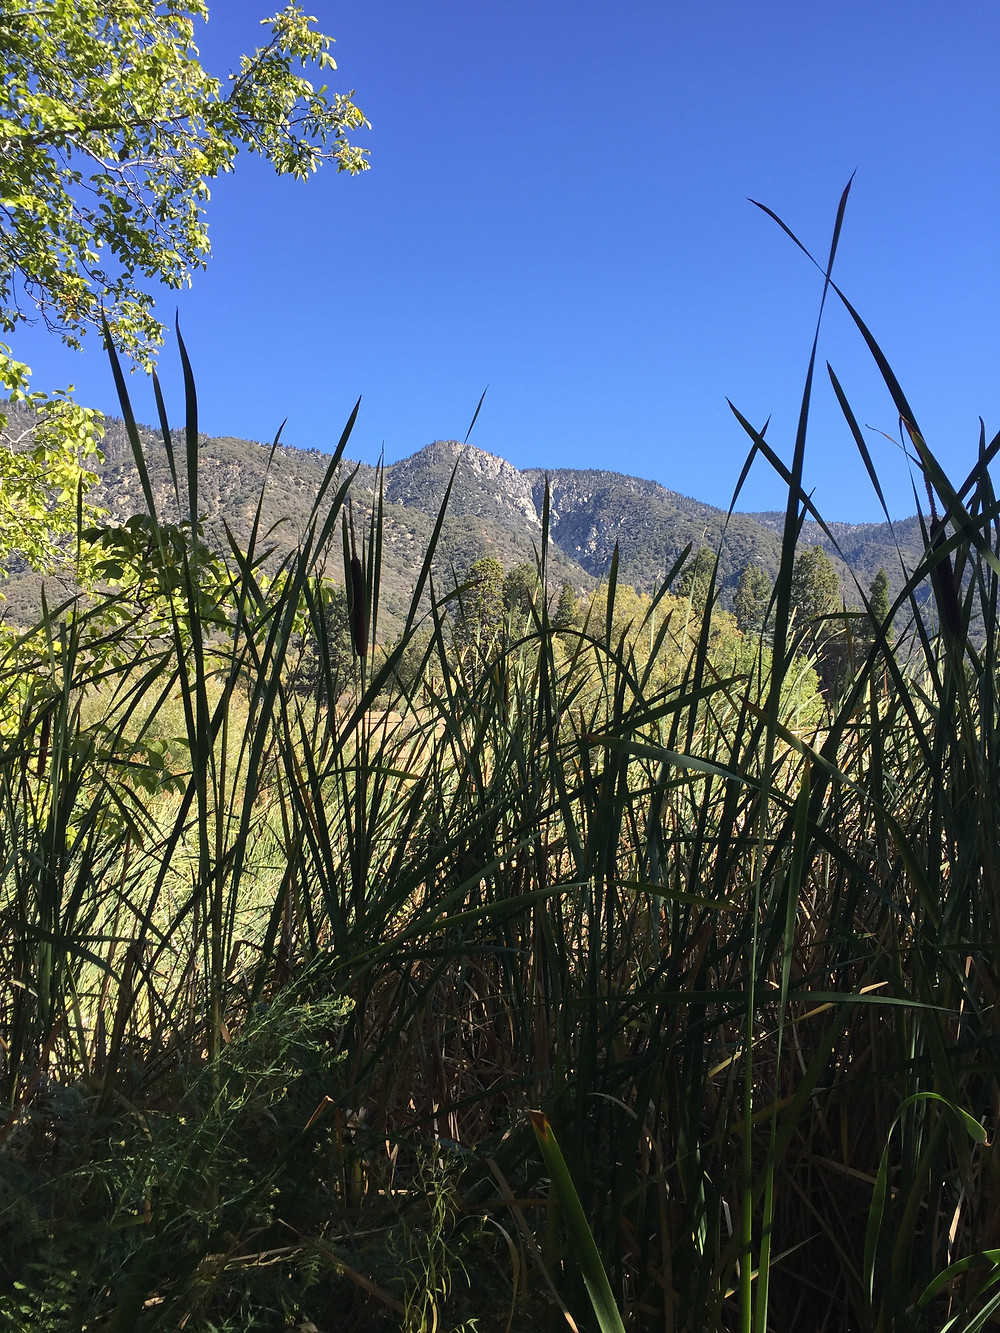 A view of the San Bernardino Mountains from Oak Glen